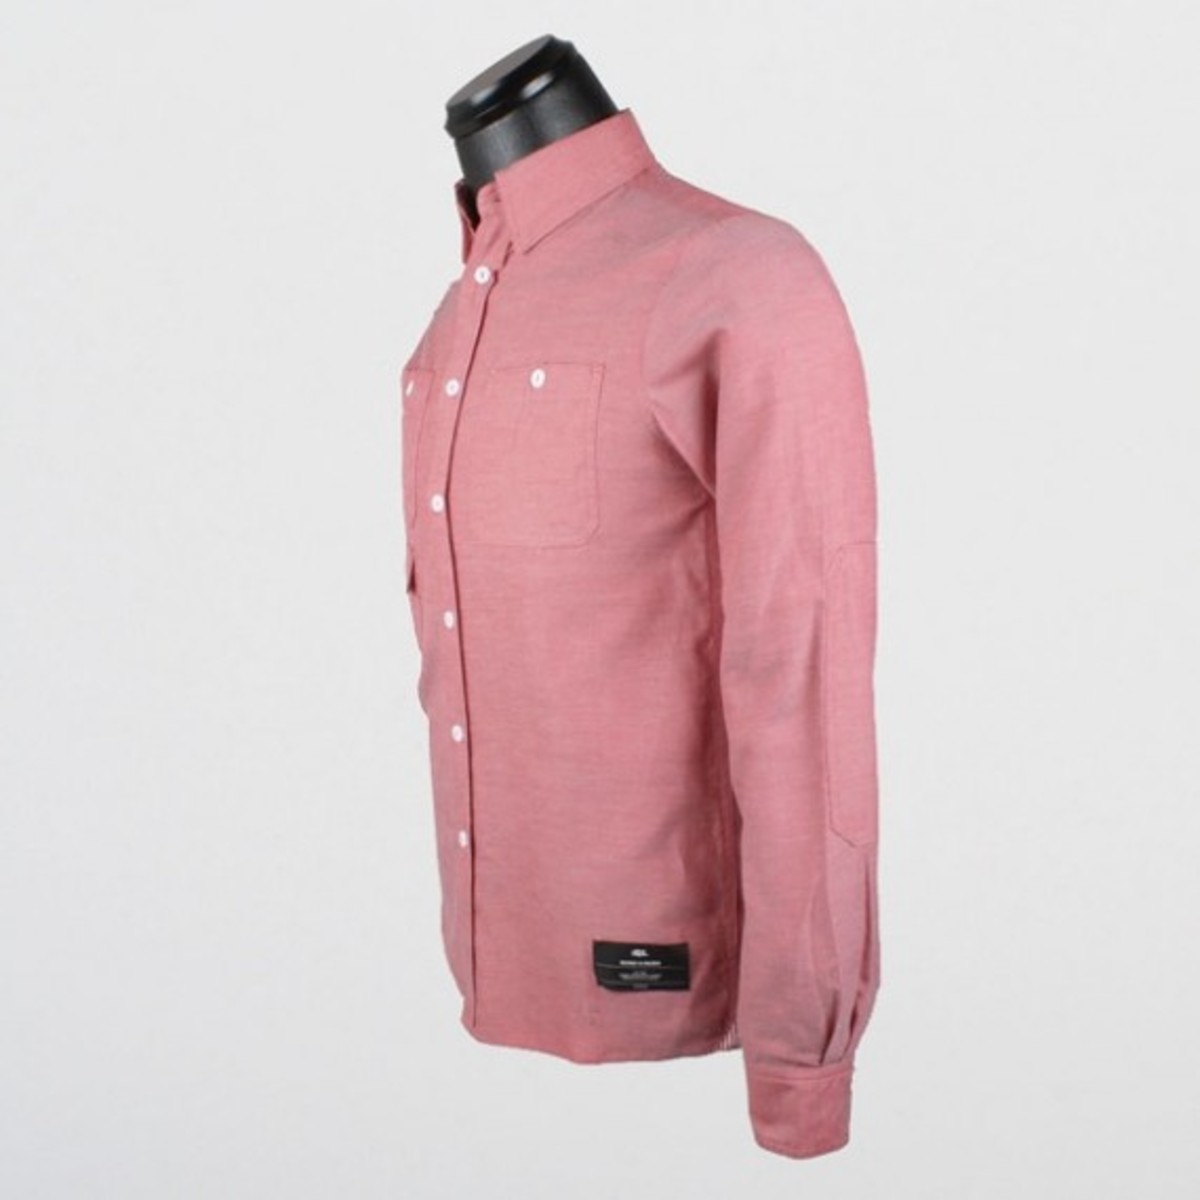 STPL-Freeman-Long-Sleeve-Button-Shirt-SP11_5